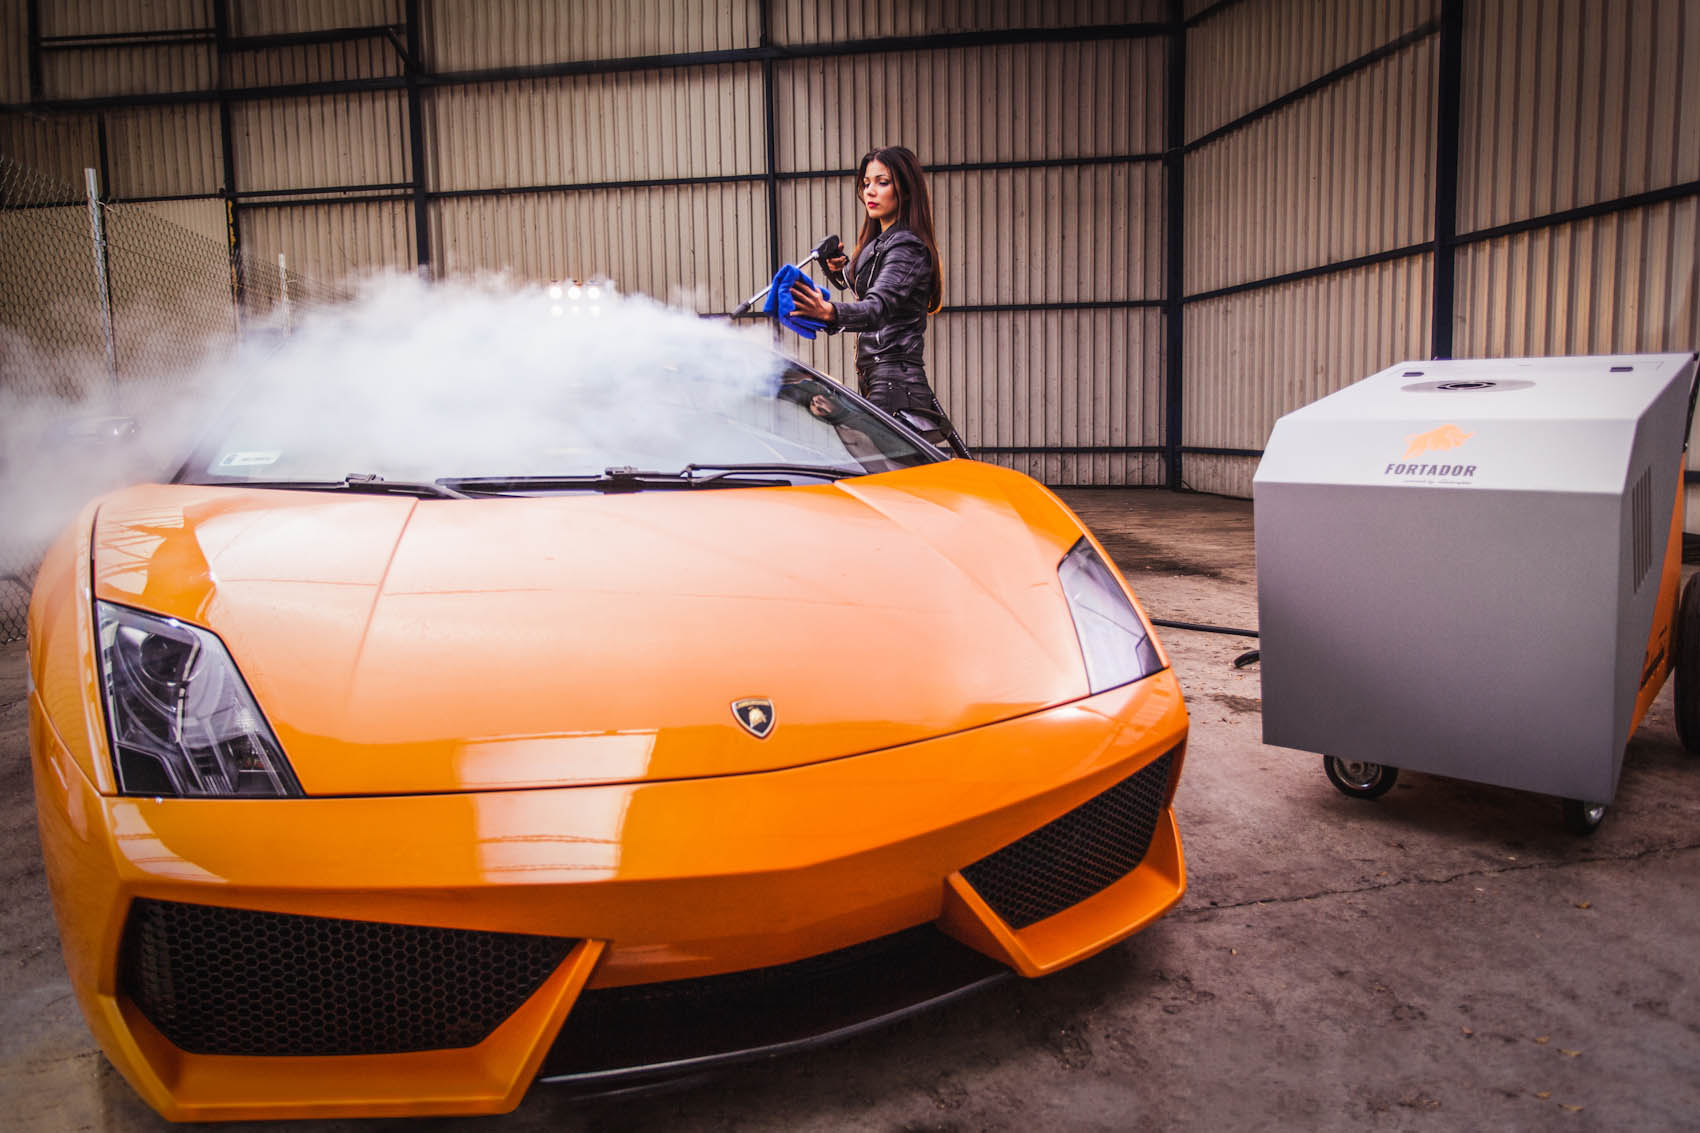 Fortador car wash steam cleaner working on a lamborghini.